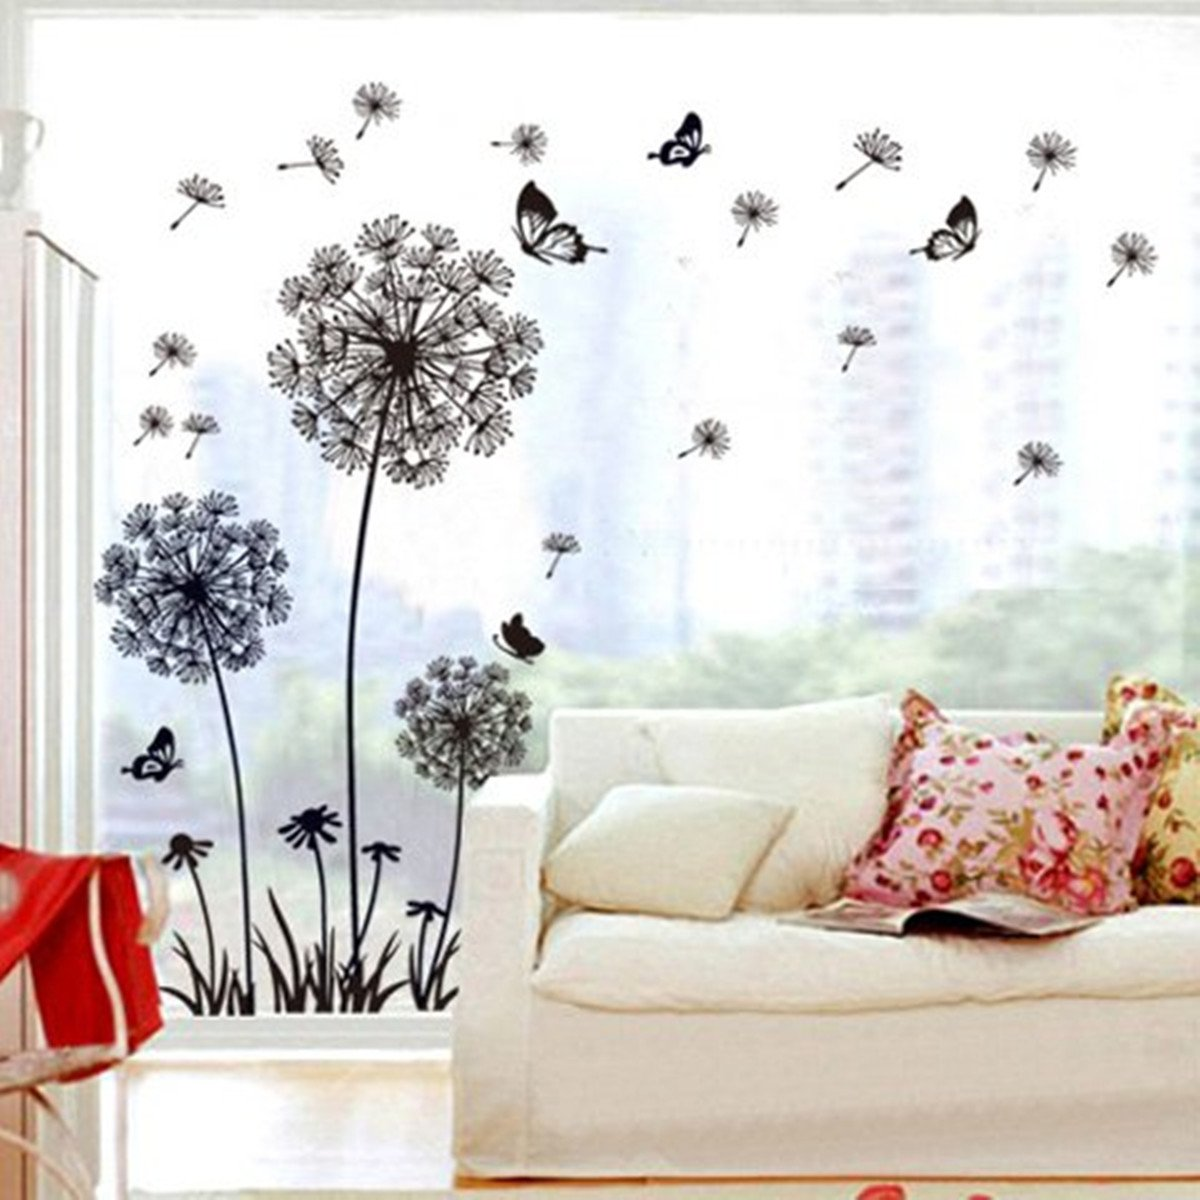 3cworld Dandelion And Butterflies Self Adhesive Wall Decals Stickers For  DIY Mural Art Merry Christmas Gift (Dandelion Black)     Amazon.com